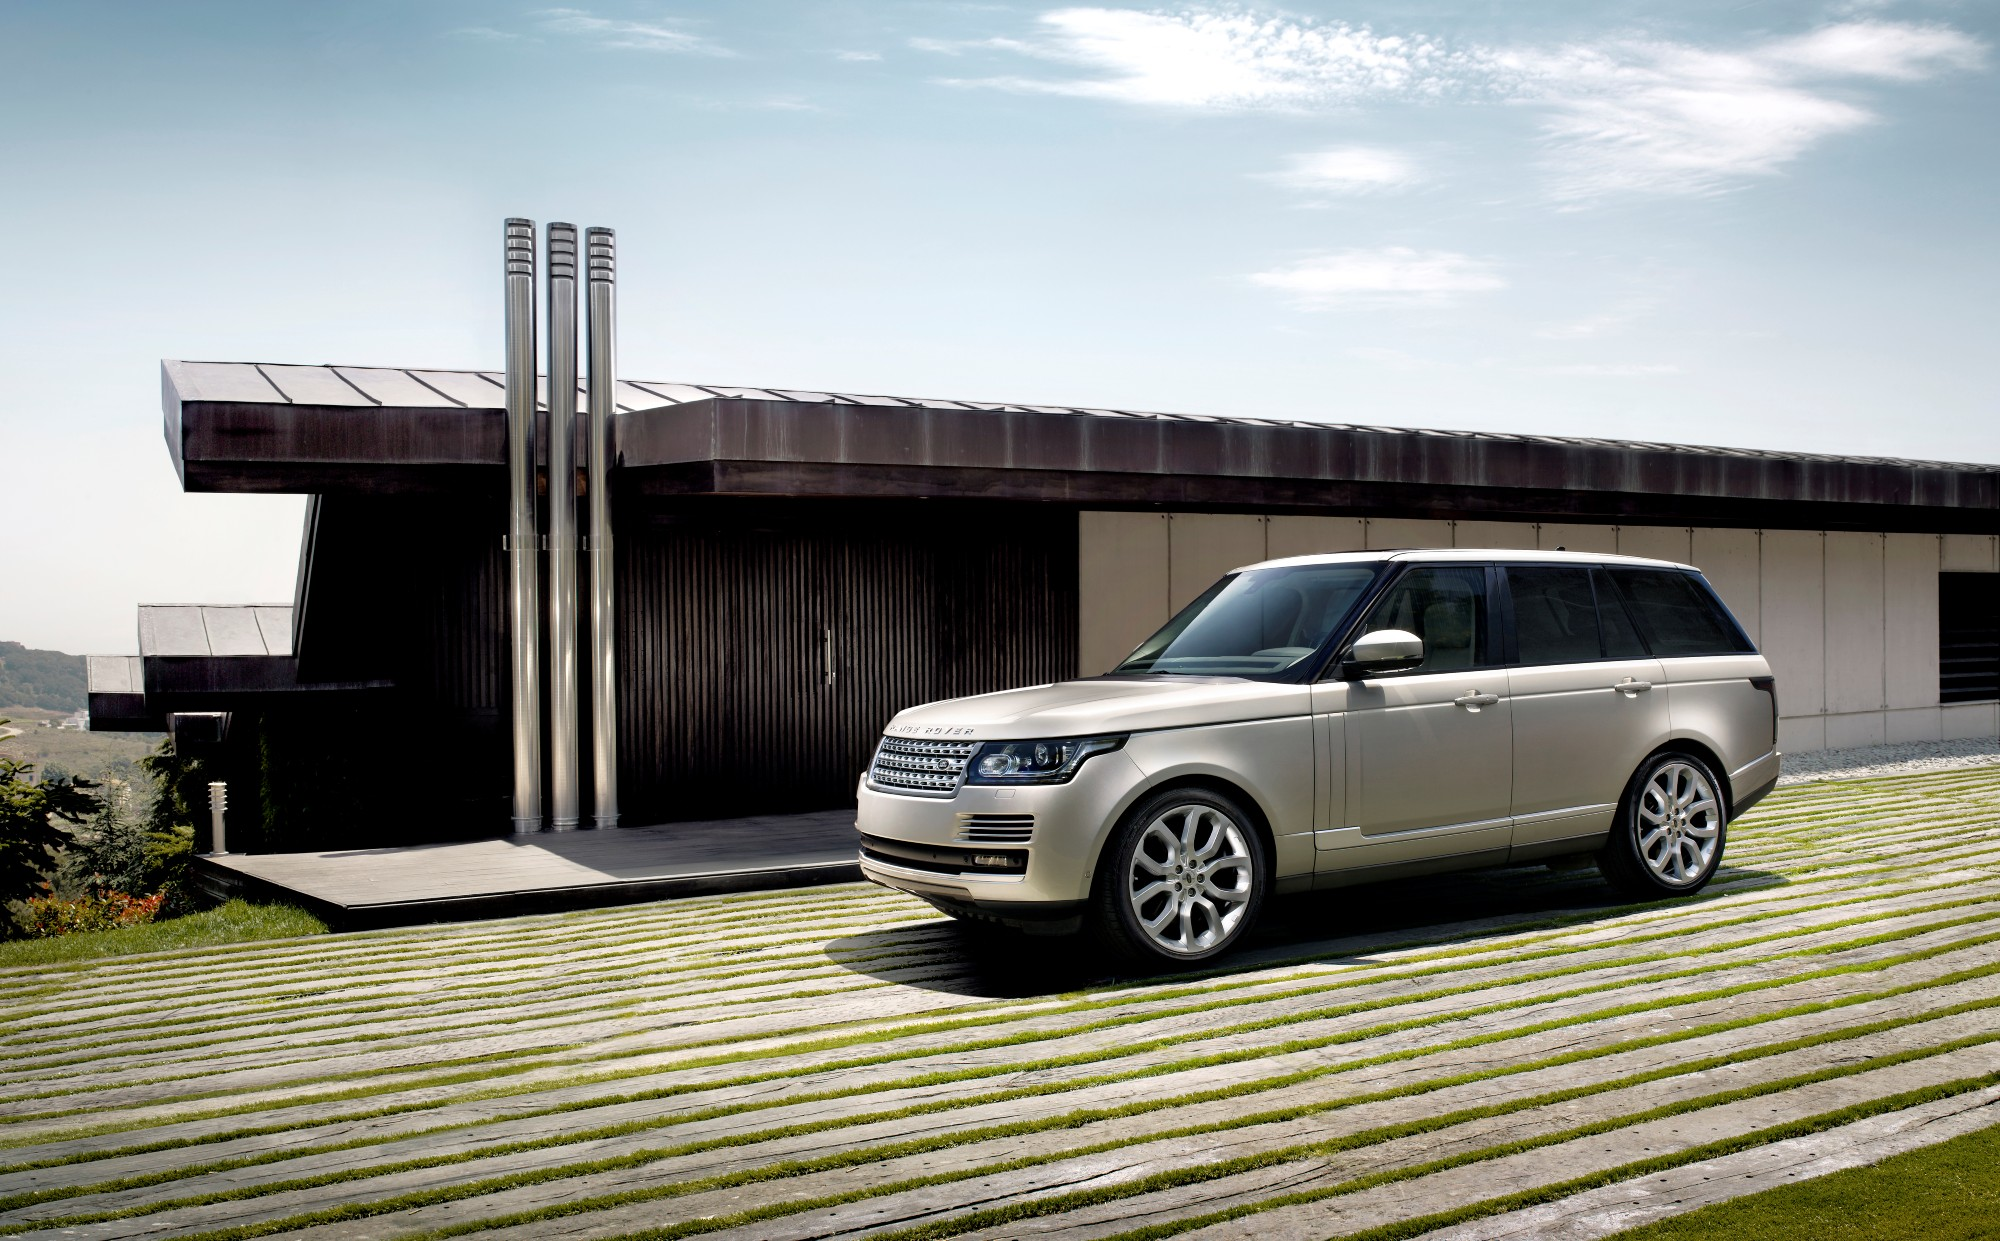 2013 Land Rover Range Rover Preview: 700 Pounds Lighter